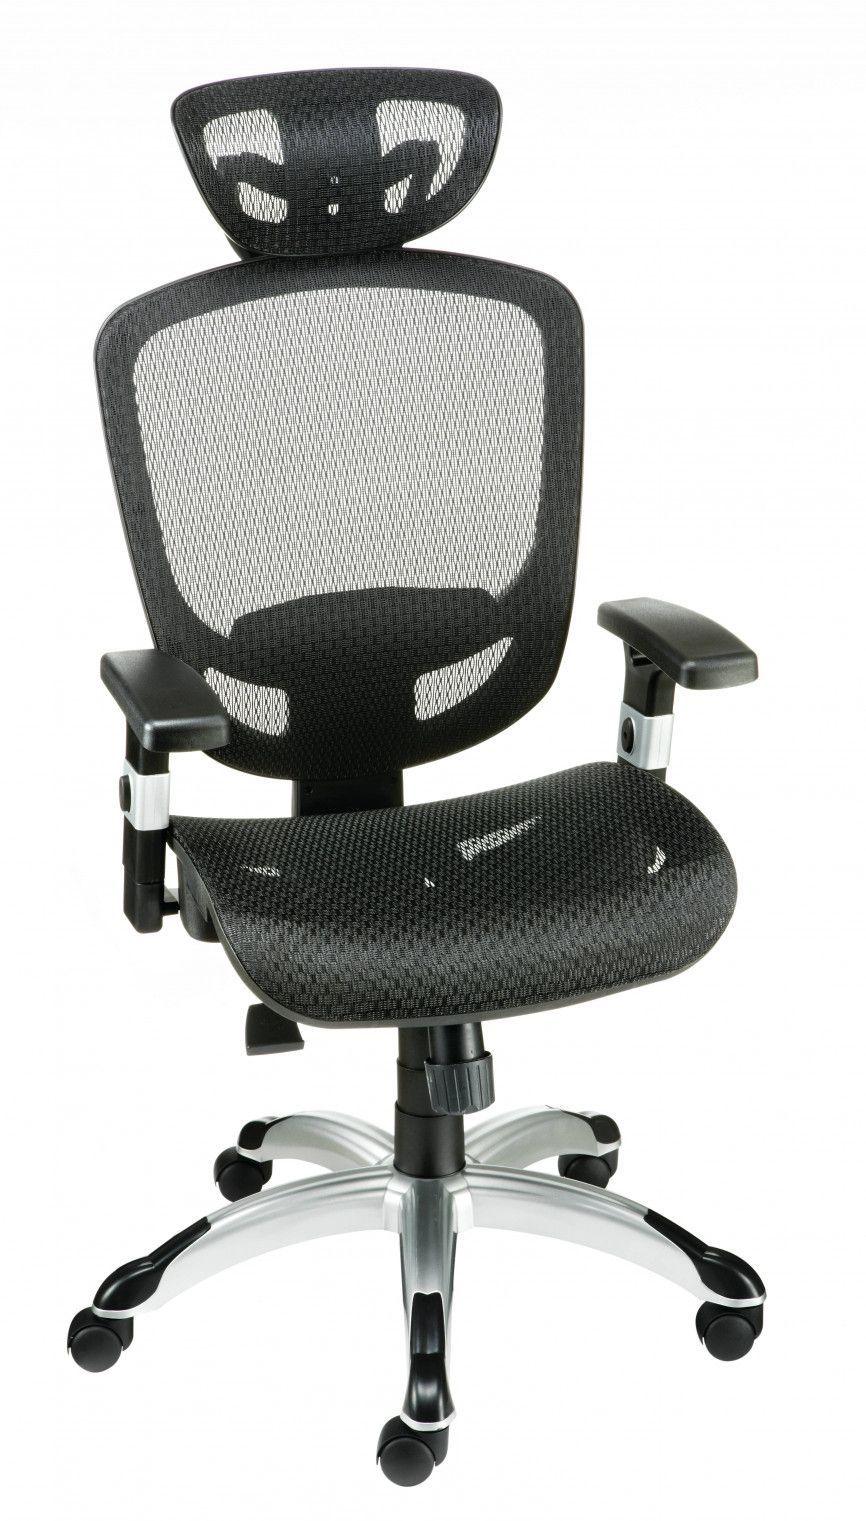 77+ Ergonomic Office Chairs Staples - Home Office Furniture Desk Check more at   sc 1 st  Pinterest & 77+ Ergonomic Office Chairs Staples - Home Office Furniture Desk ...